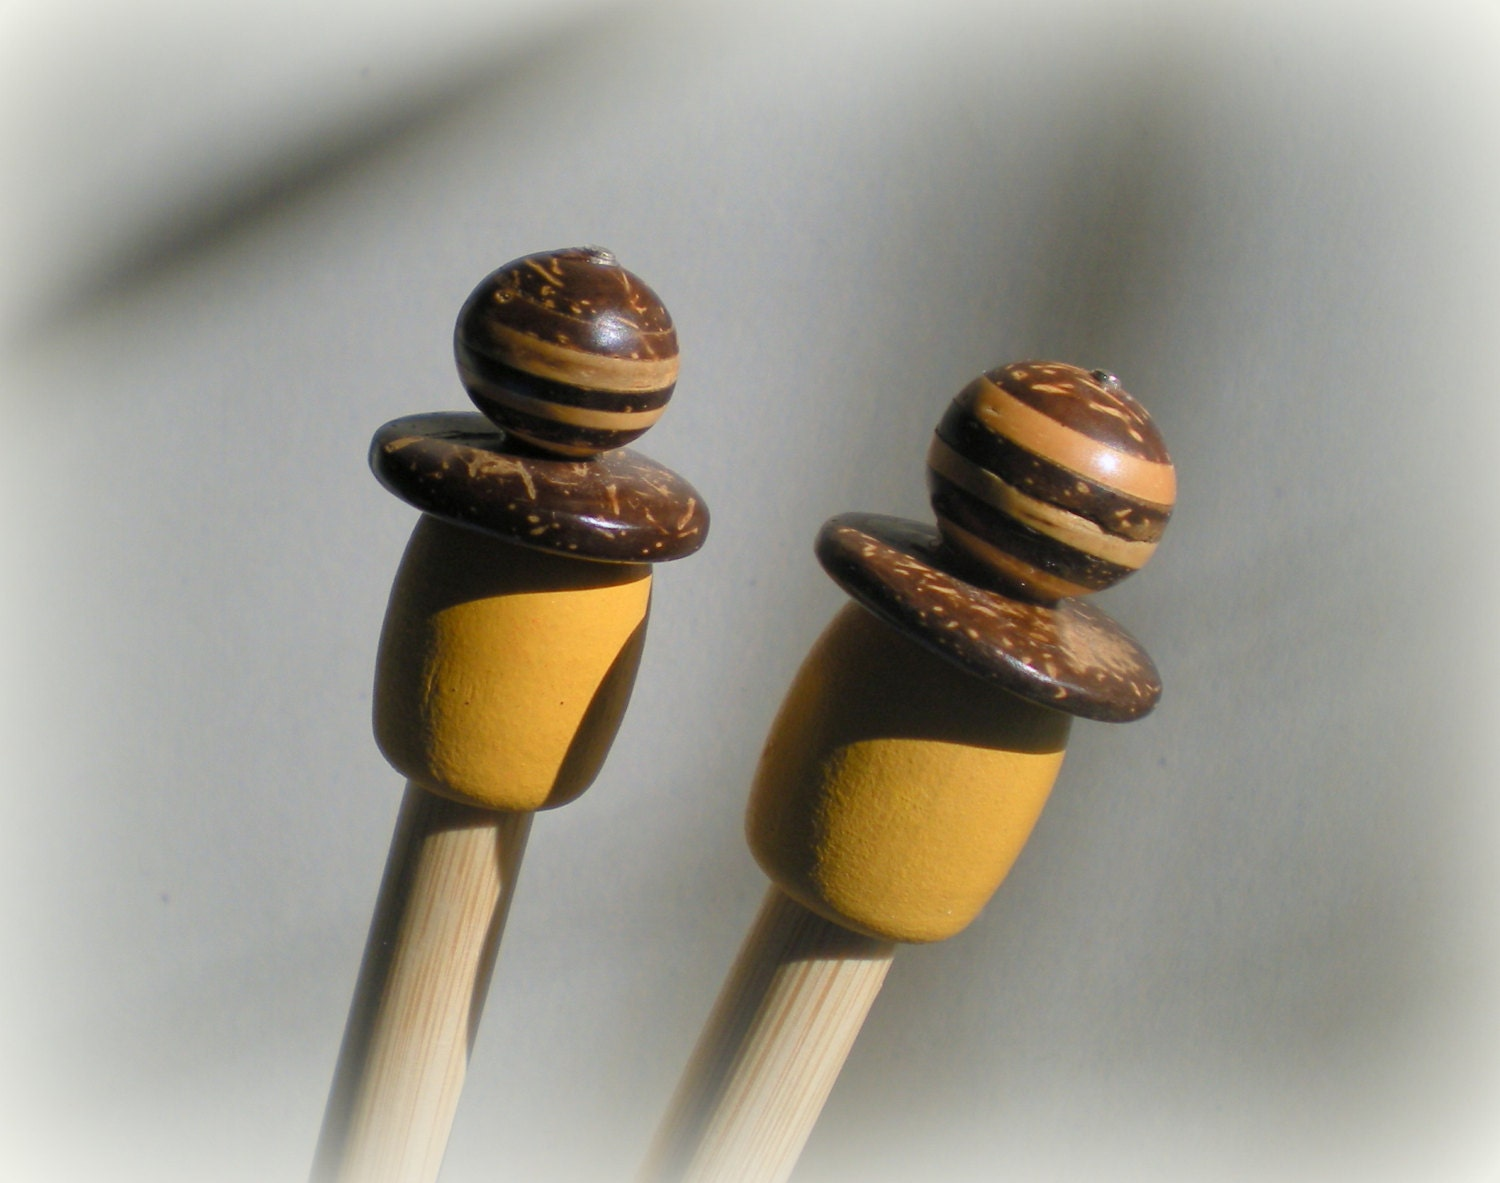 Wooden Knitting Needles : Wooden Knitting Needles Size US 15 by Whatruknitting on Etsy